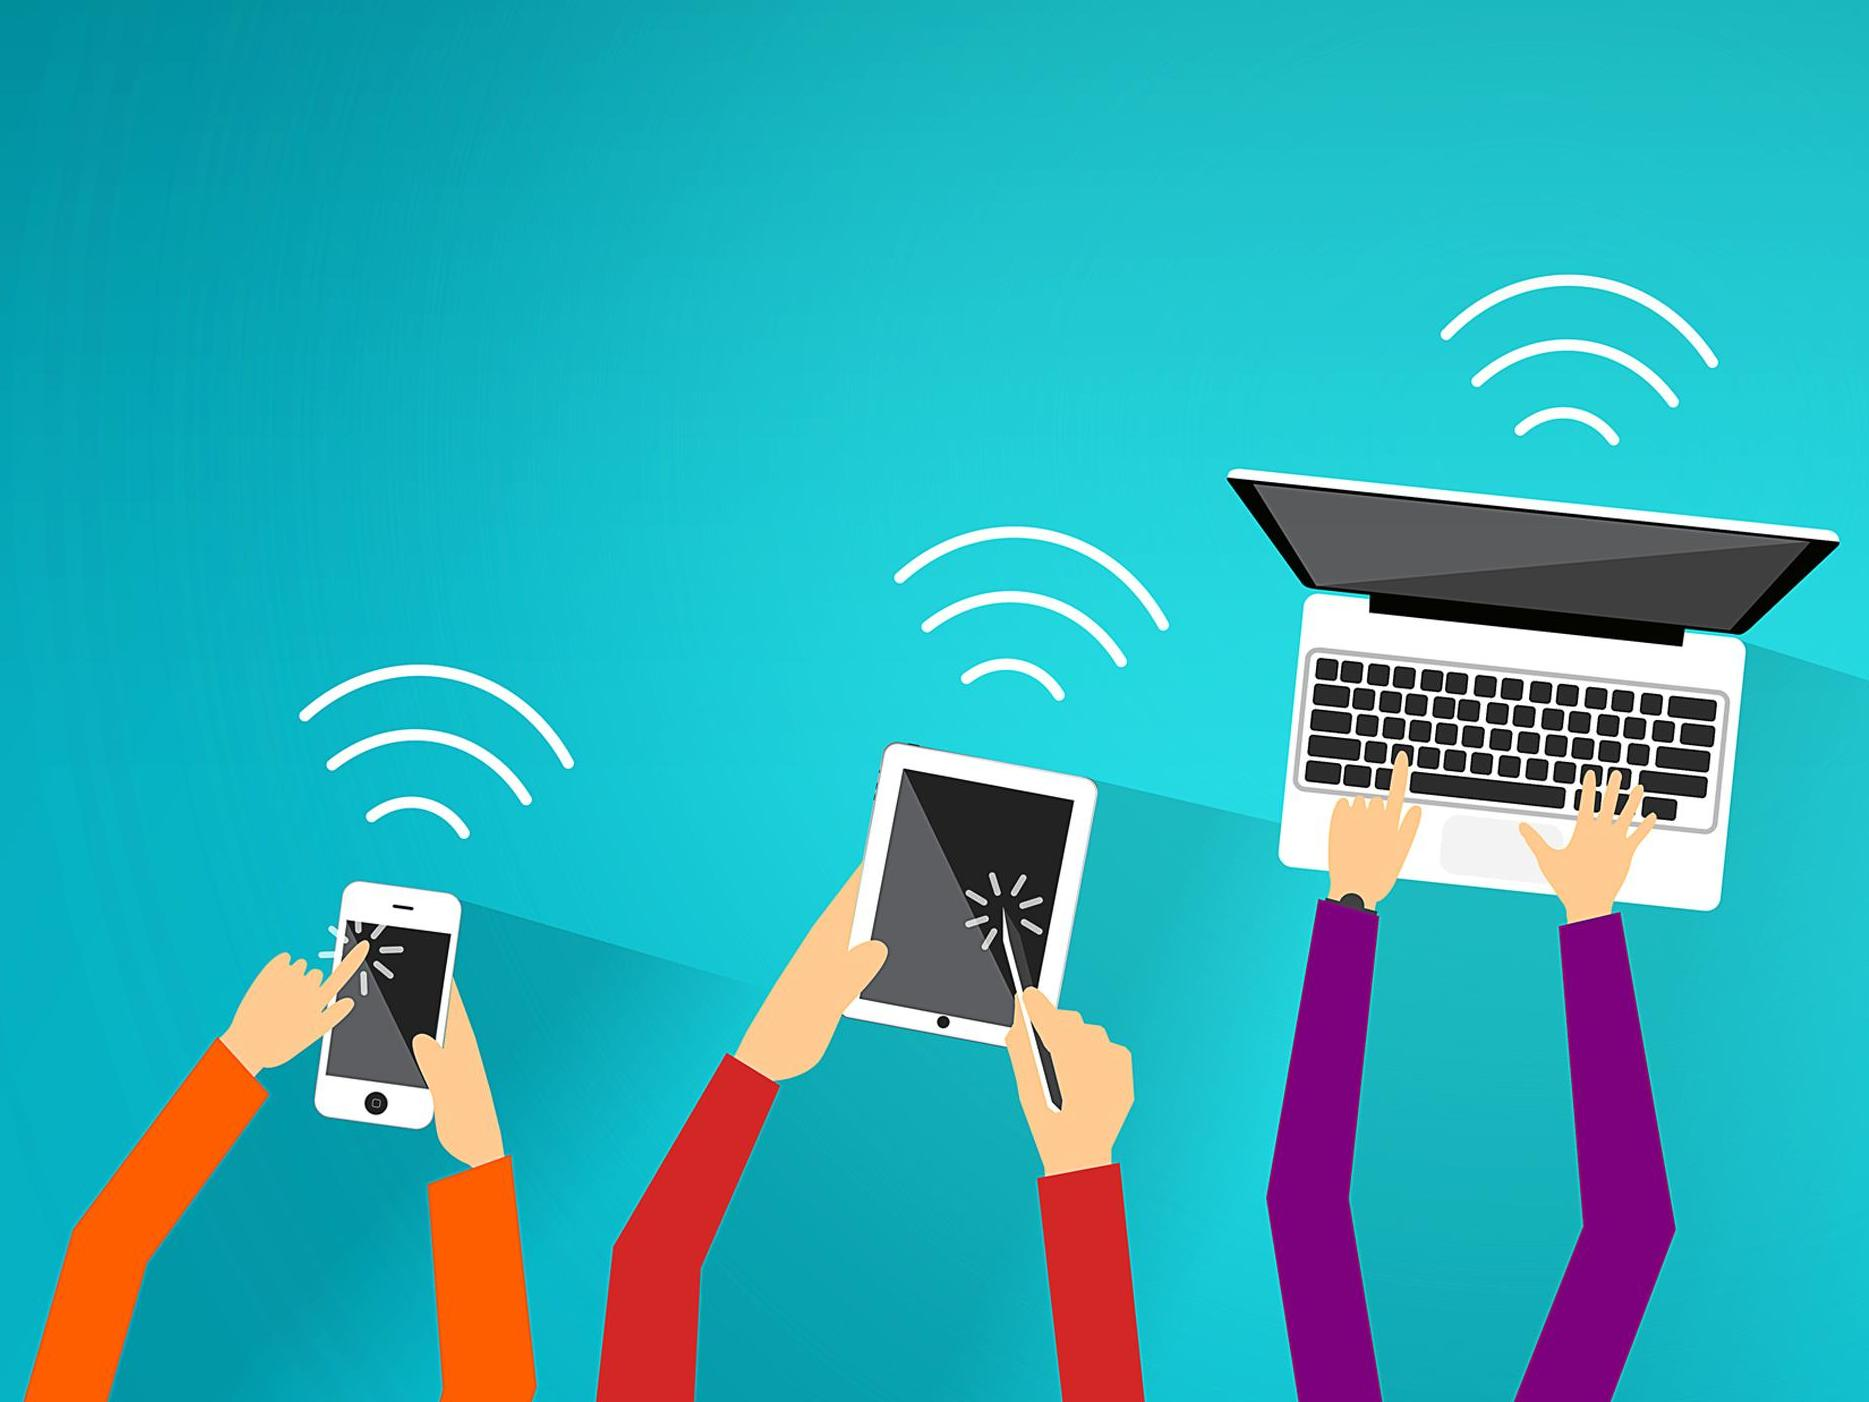 Wi-Fi : use eduroam, end of secure-unil